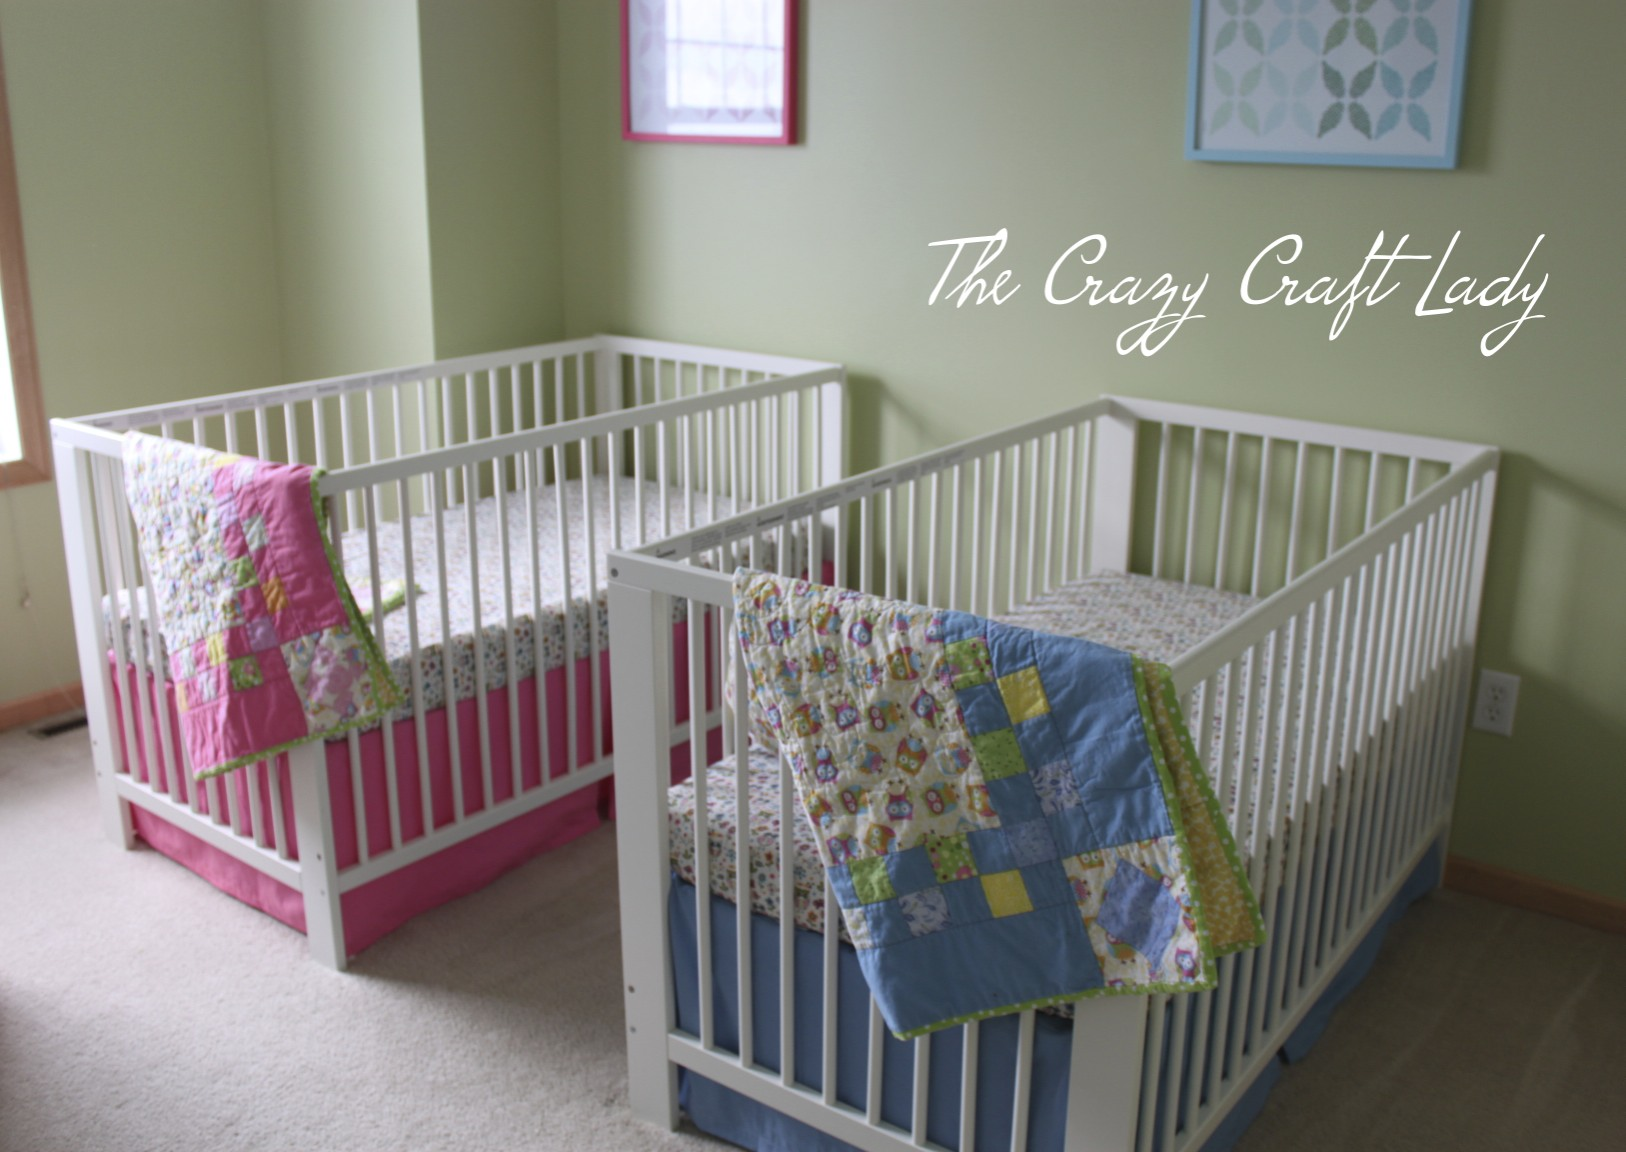 bedding baby furniture whole white table and crib ikea changing nursery playpen grey mattress convertible rage wood set wooden cribs black bedroom big off deals sets original